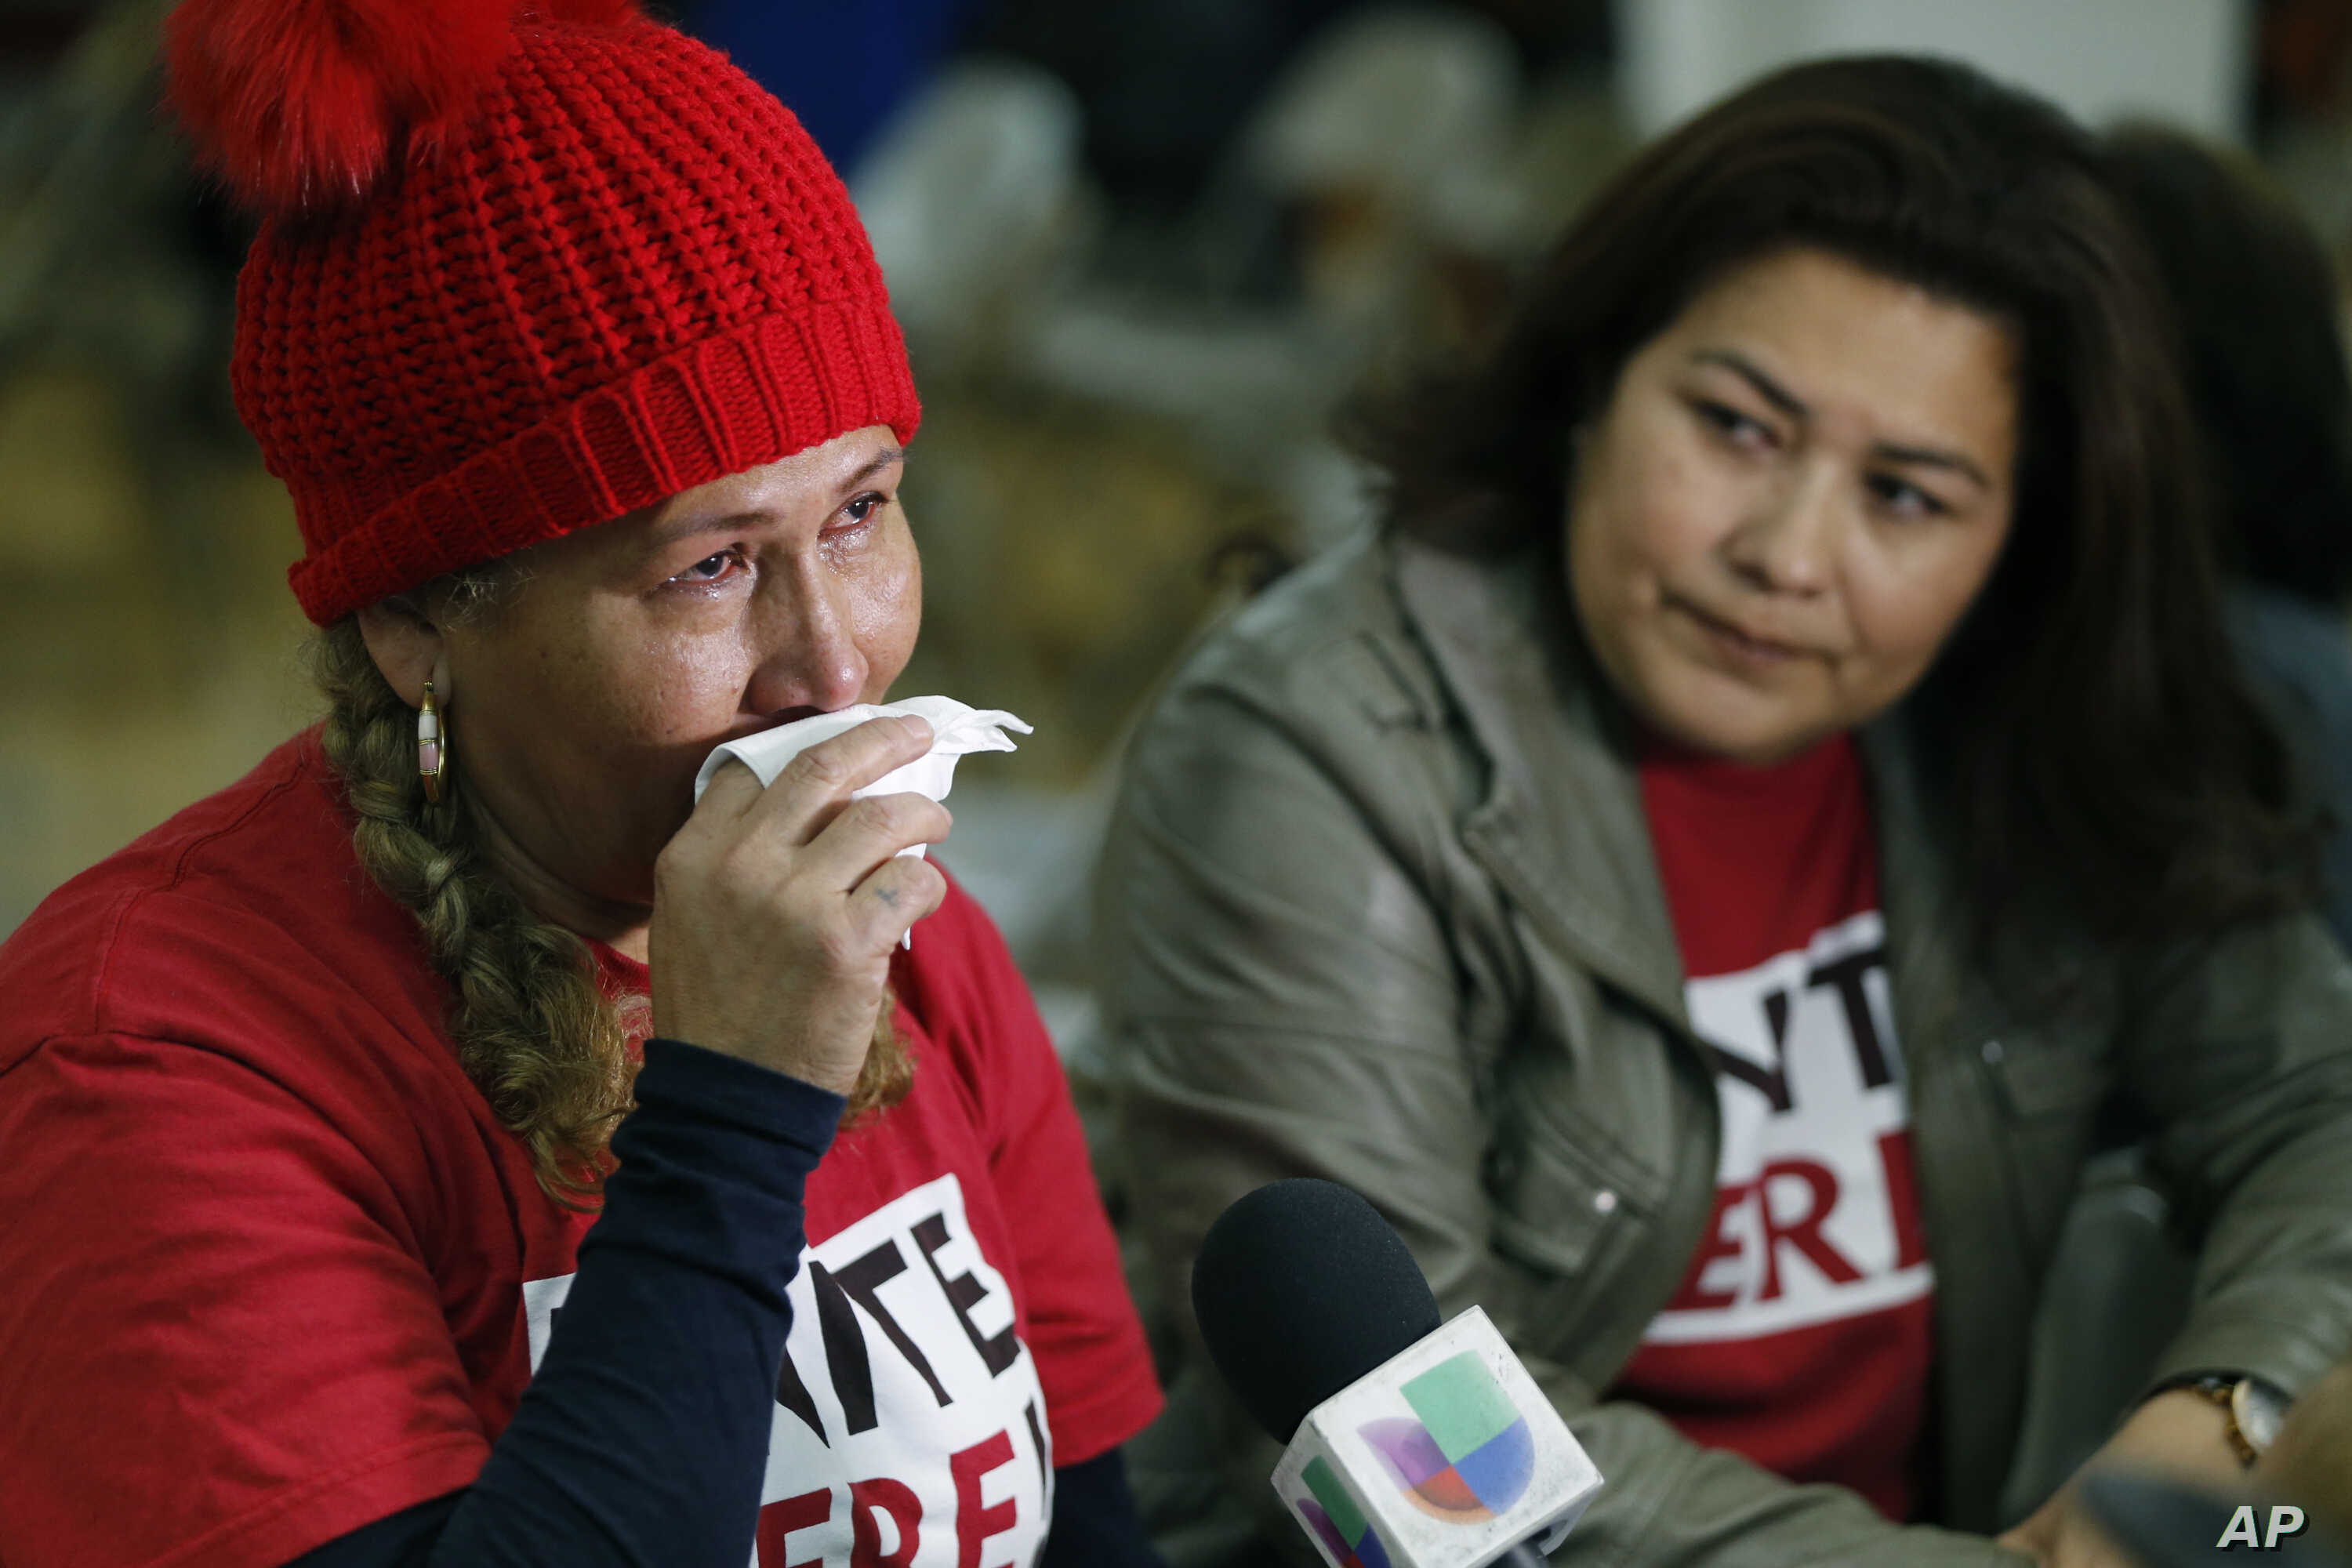 El Salvador immigrants Diana Paredes, left, and Isabel Barrera react at a news conference following an announcement on Temporary Protected Status for nationals of El Salvador, in Los Angeles, Jan. 8, 2018.